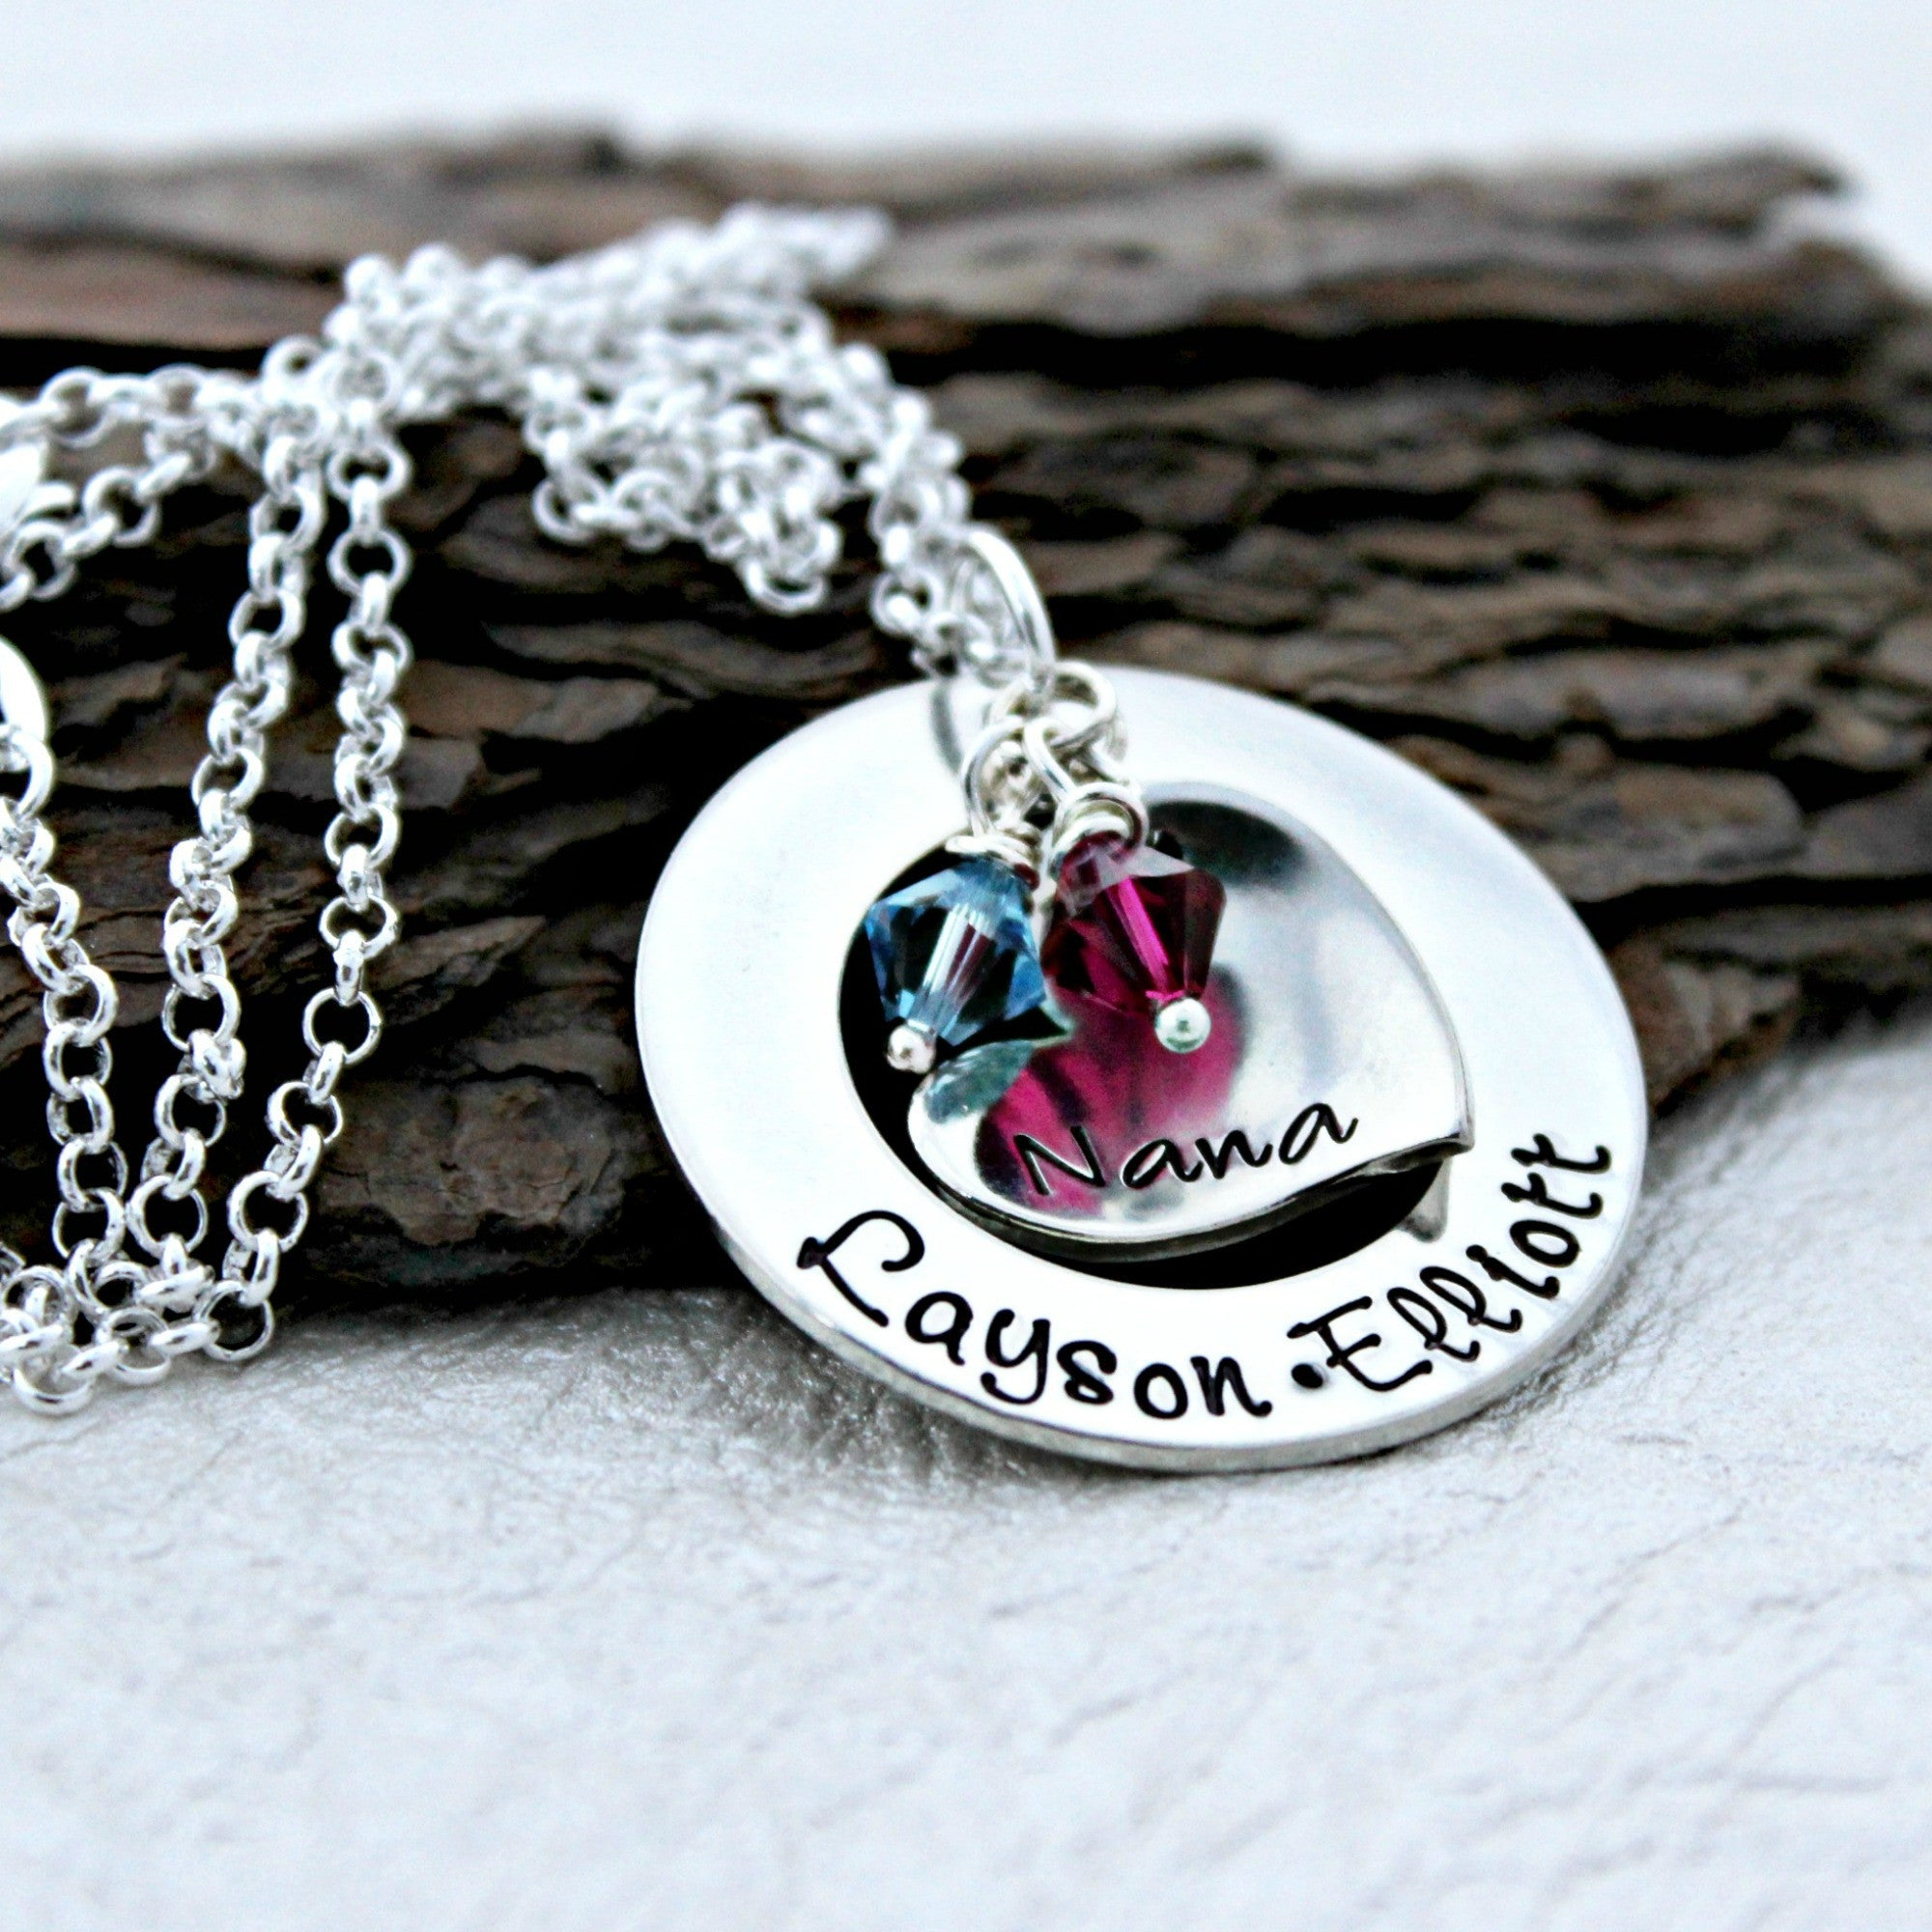 grandmother hand personalized name birthstones nana grandma custom necklace pin stamped crystal with jewelry swarovski